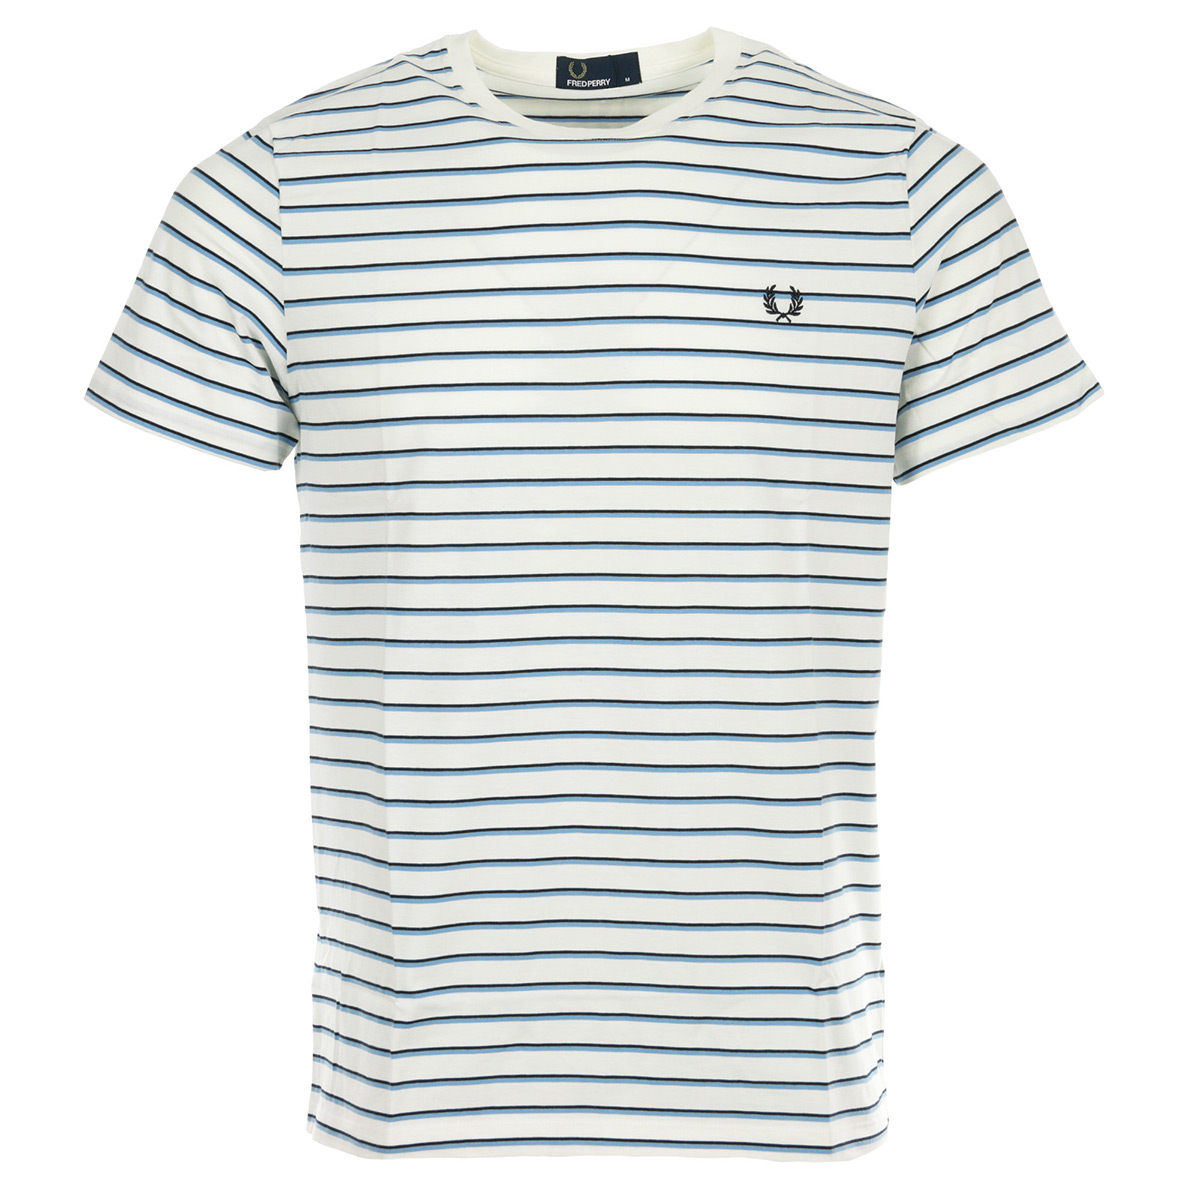 08a054c589f52 Fred Perry Fine Stripe T-Shirt